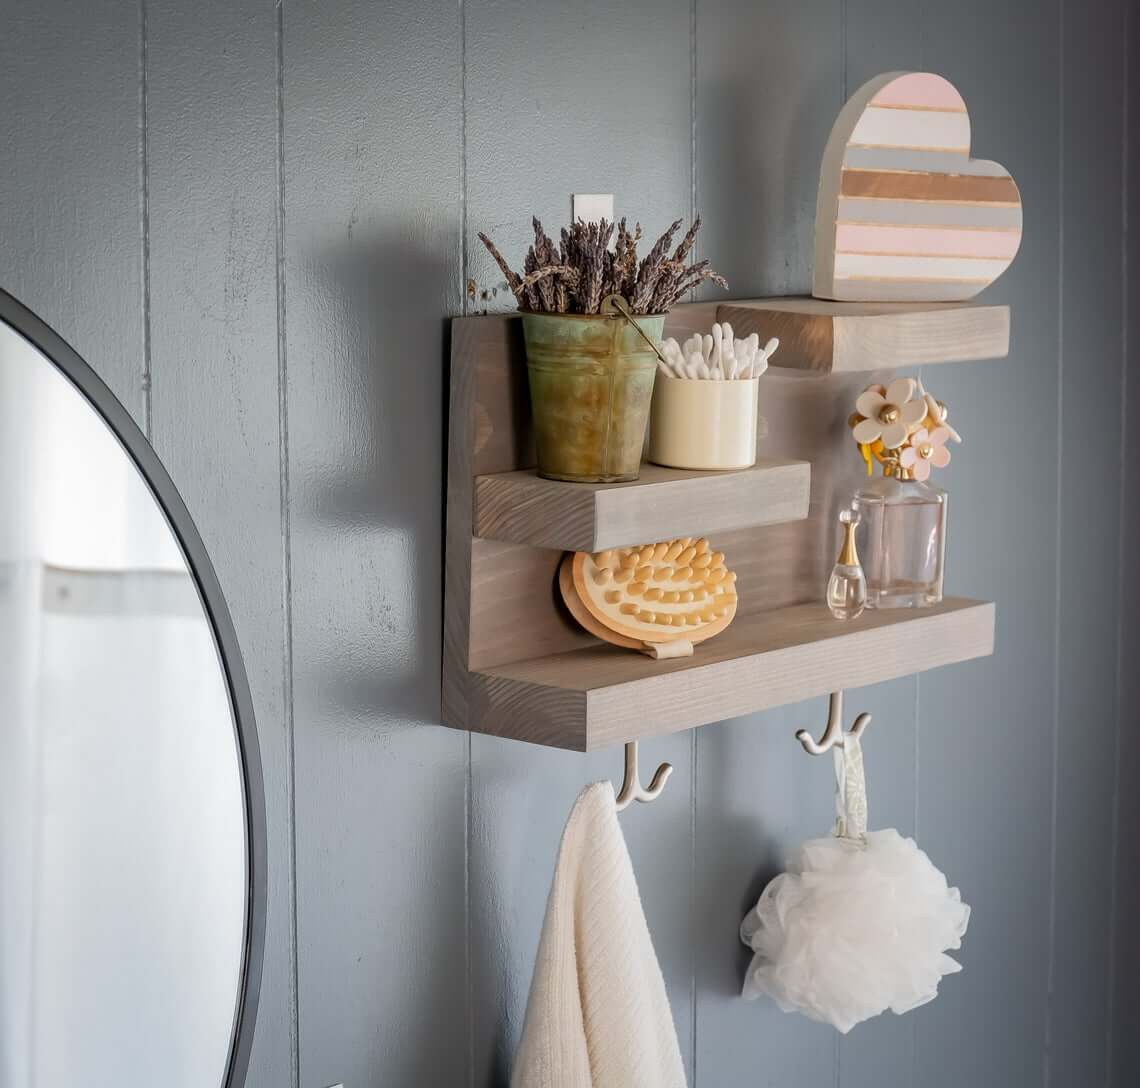 Muted Color Step Shelves with Bottom Hooks